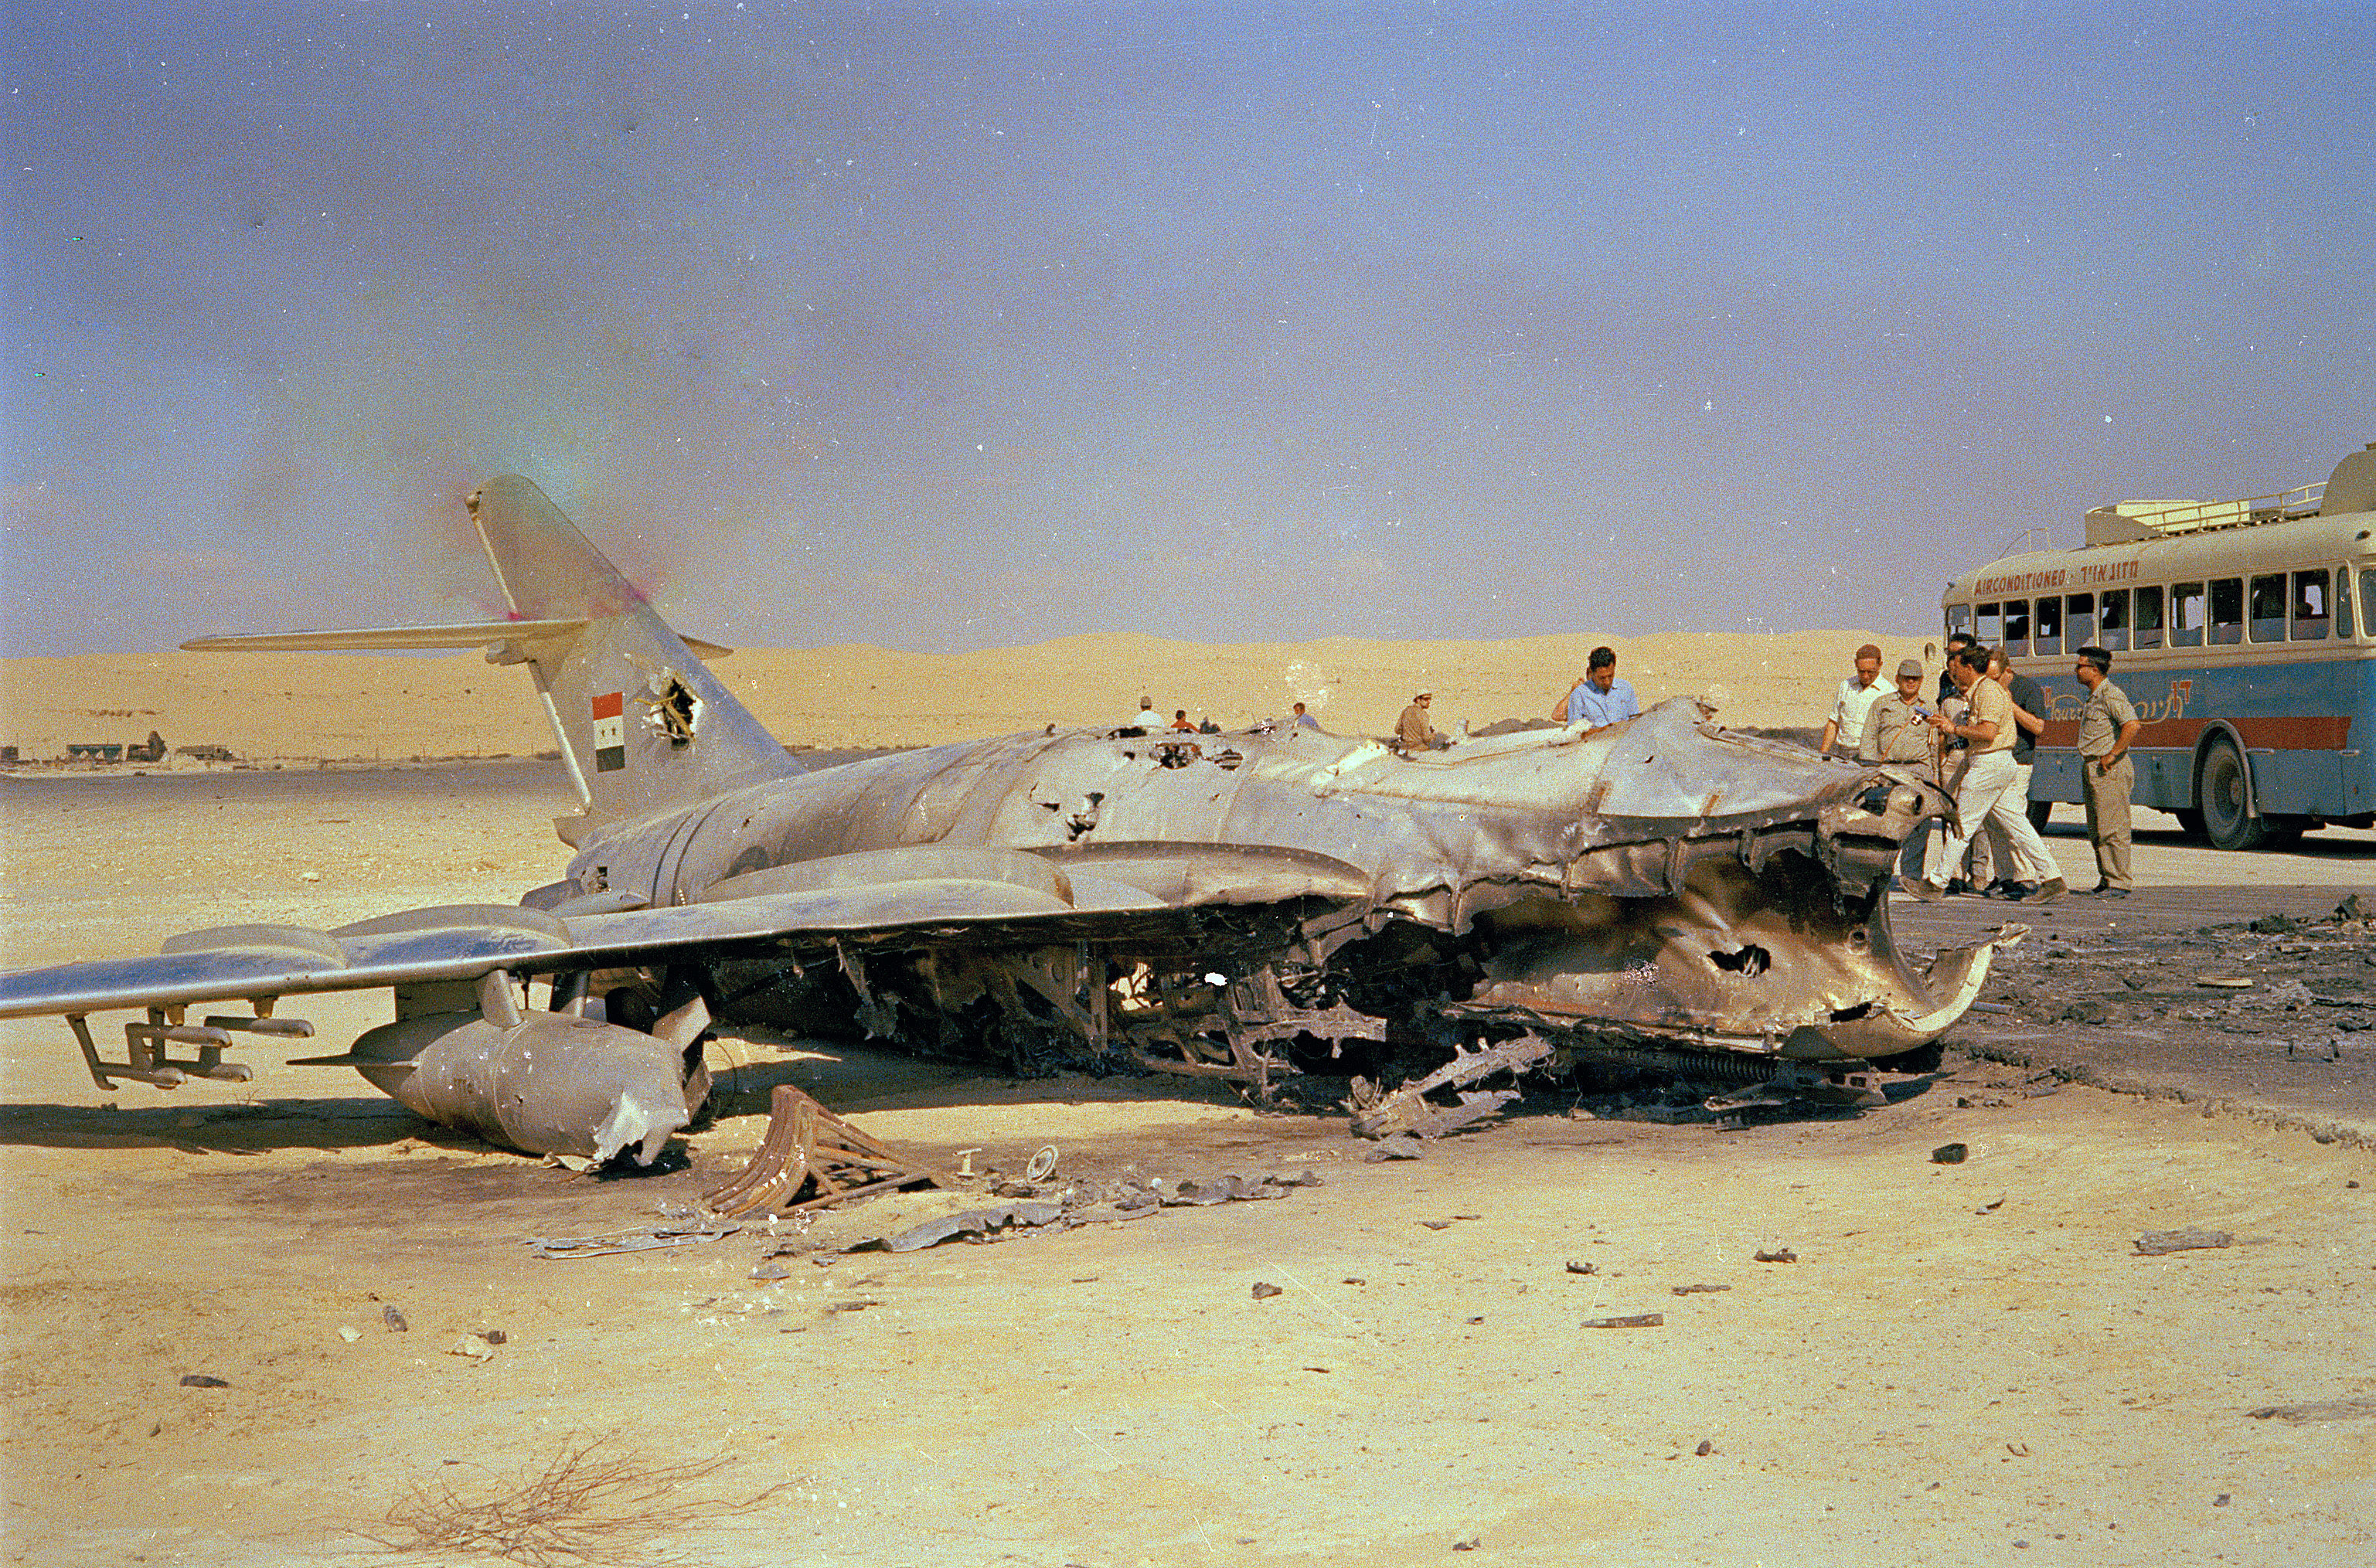 An Egyptian warplane lays destroyed on the ground following an attack by Israeli aircraft, June 1967